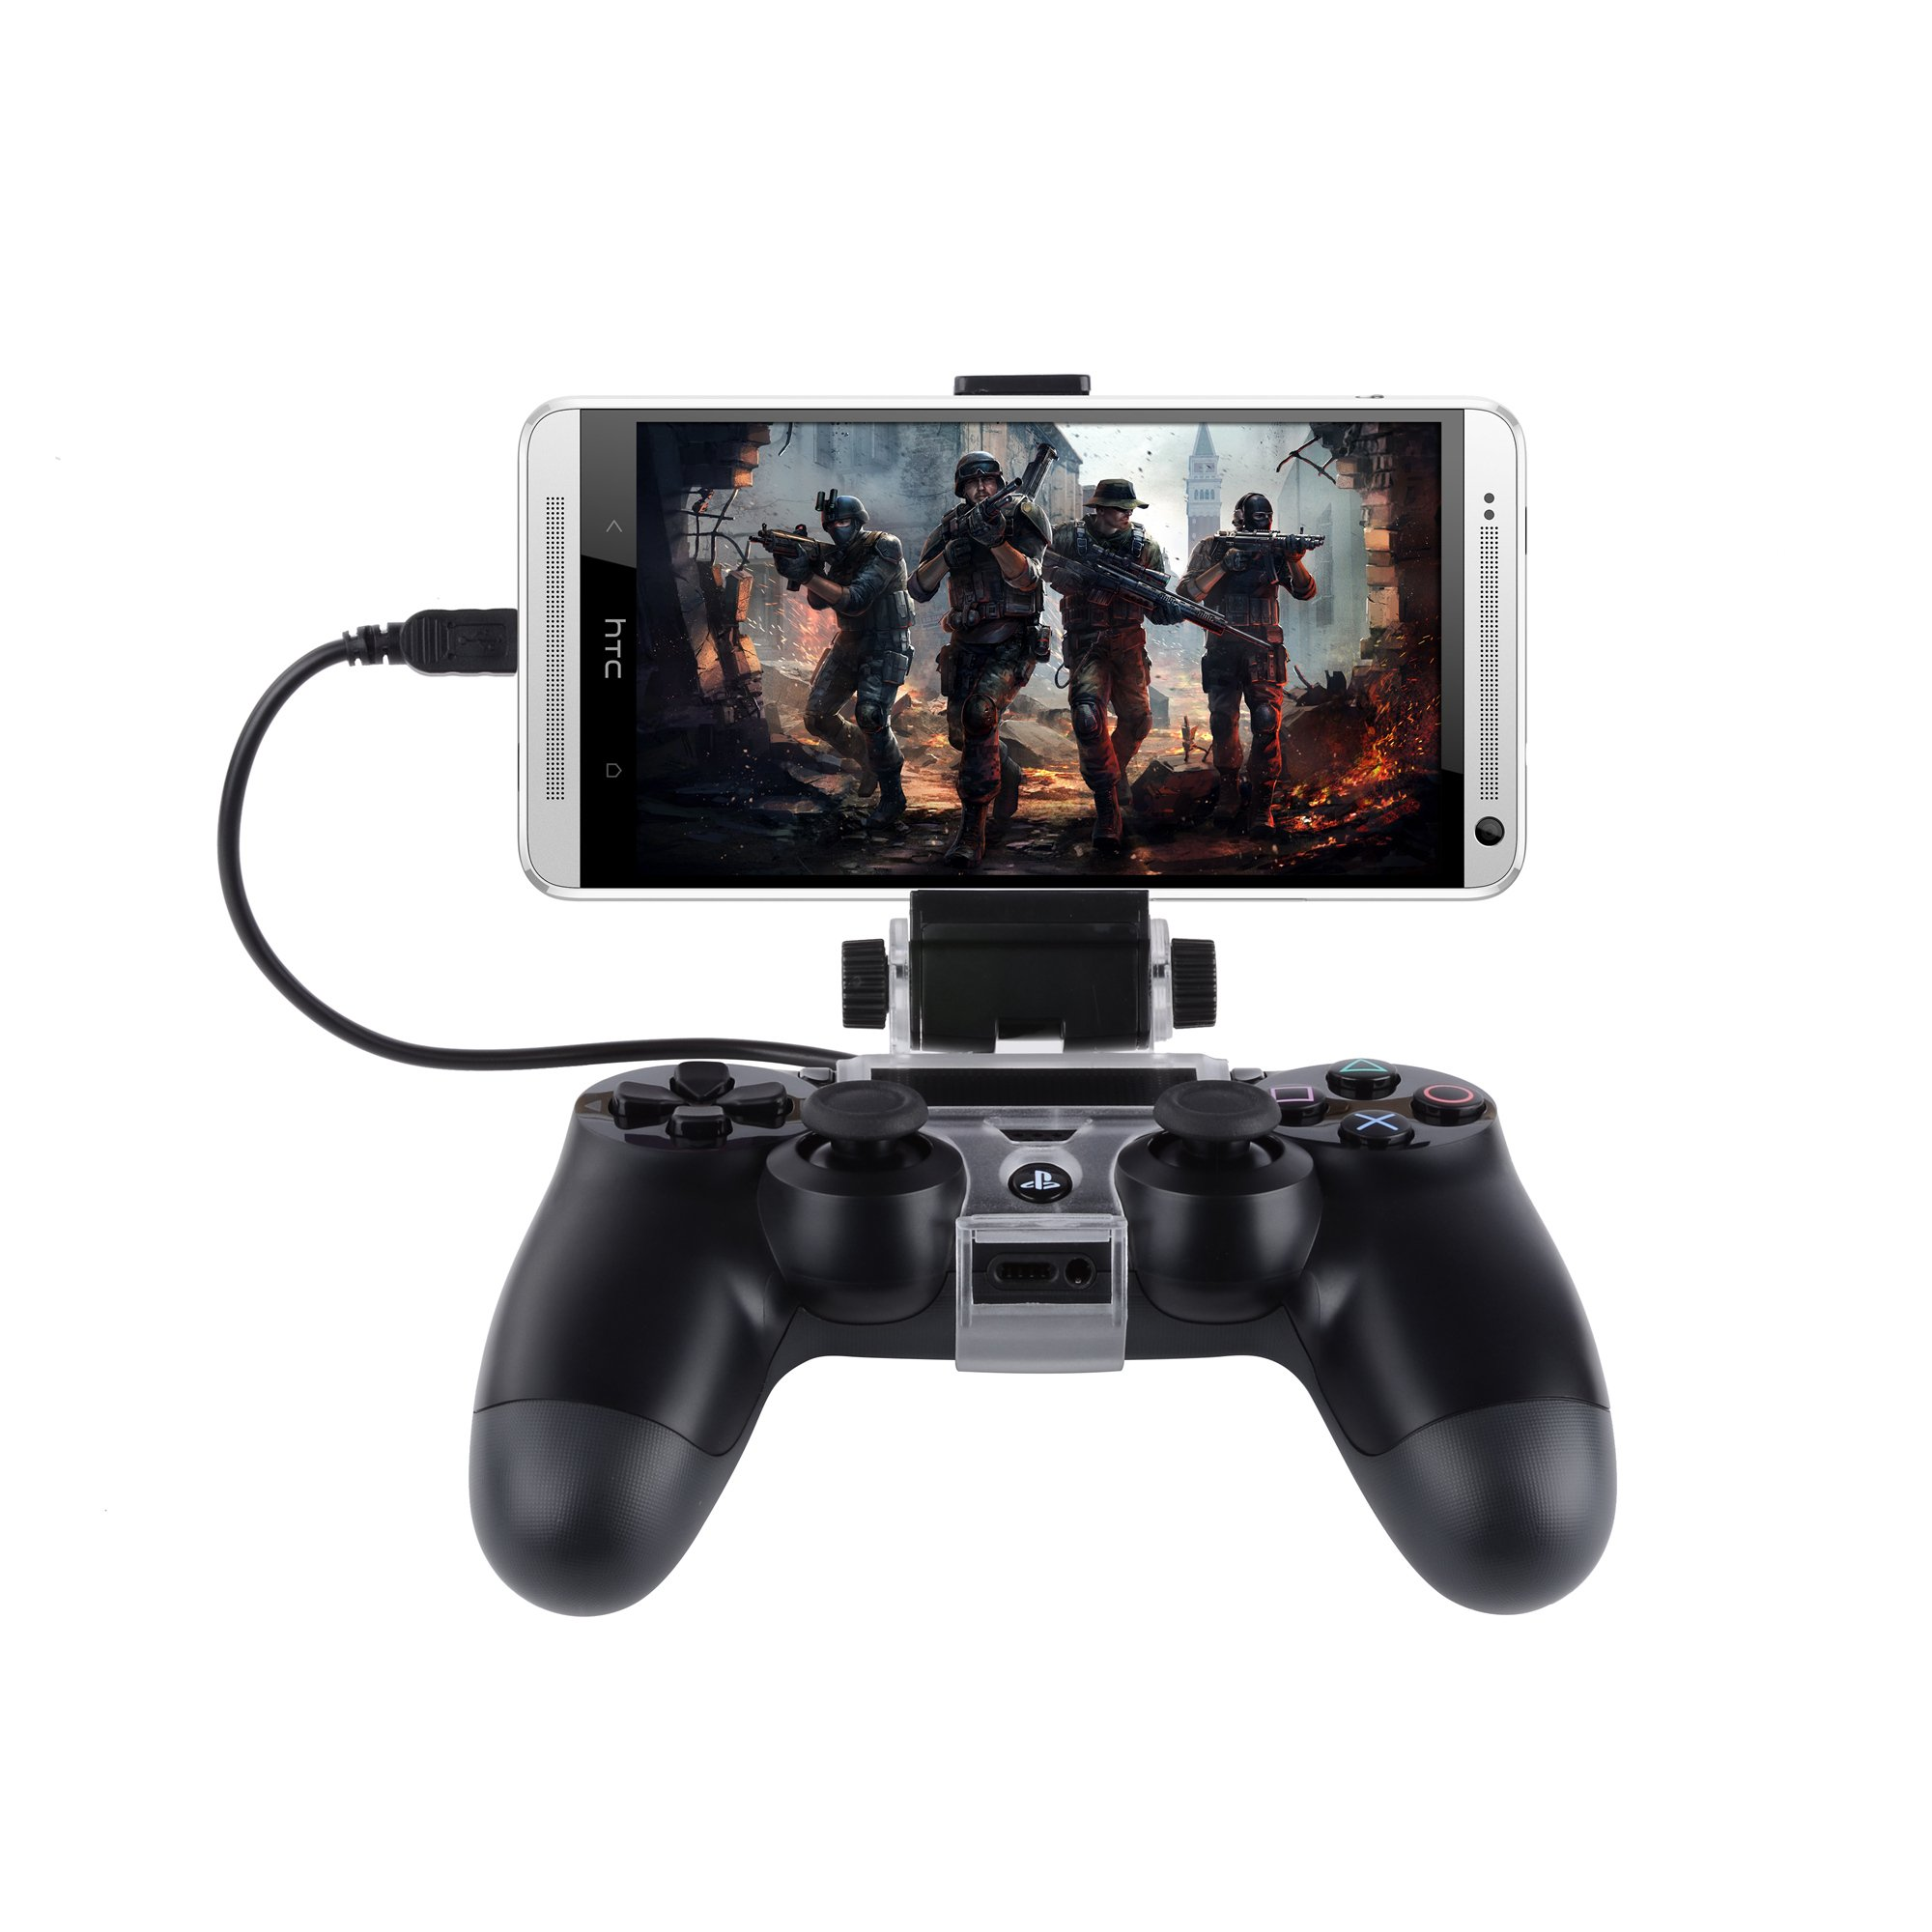 Megadream PS4 Controller Android Phone Gaming Mount Holder for Sony Playstation PS4, PS4 Slim, PS4 Pro & Samsung Galaxy S8 S8+ S7 Edge S7 S6 Note 8 6, HTC, LG, Sony, Nokia, Huawei with OTG Data Cable by Megadream